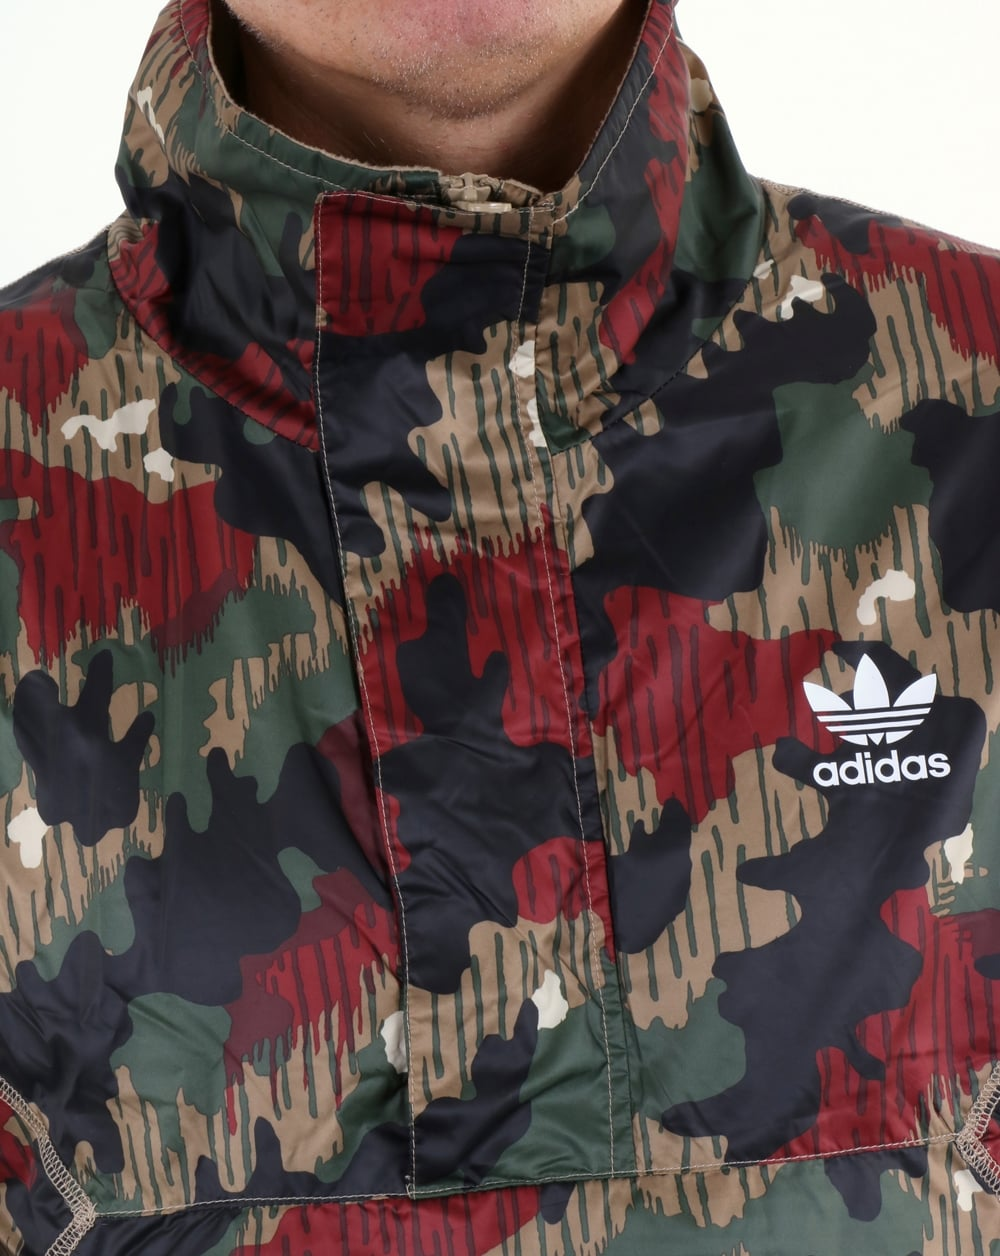 0309faf0eda0f Adidas Originals Pharrell Williams HU Hiking Half Zip Camo Windbreaker